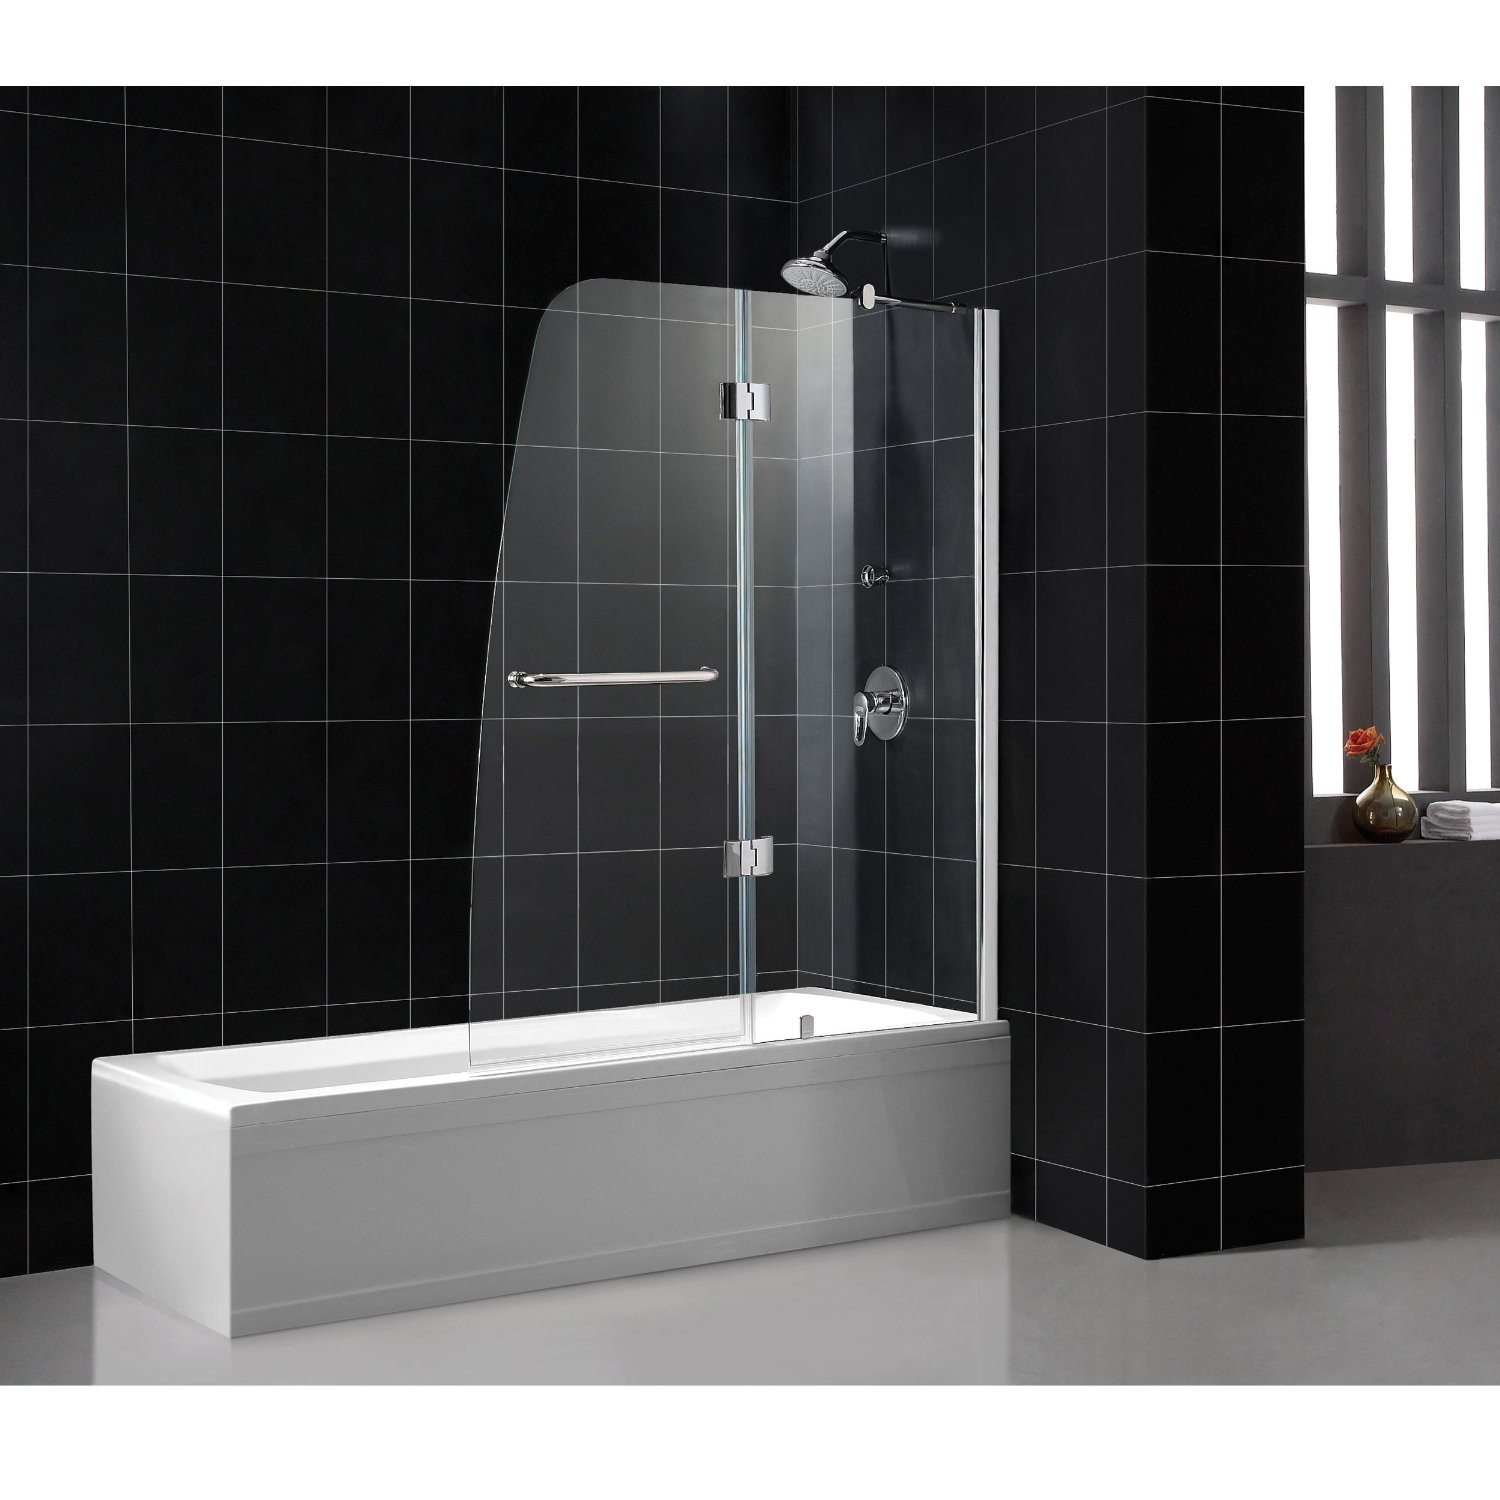 doors doctor shower showers door glass tub framed gallery enclosure productfullimage